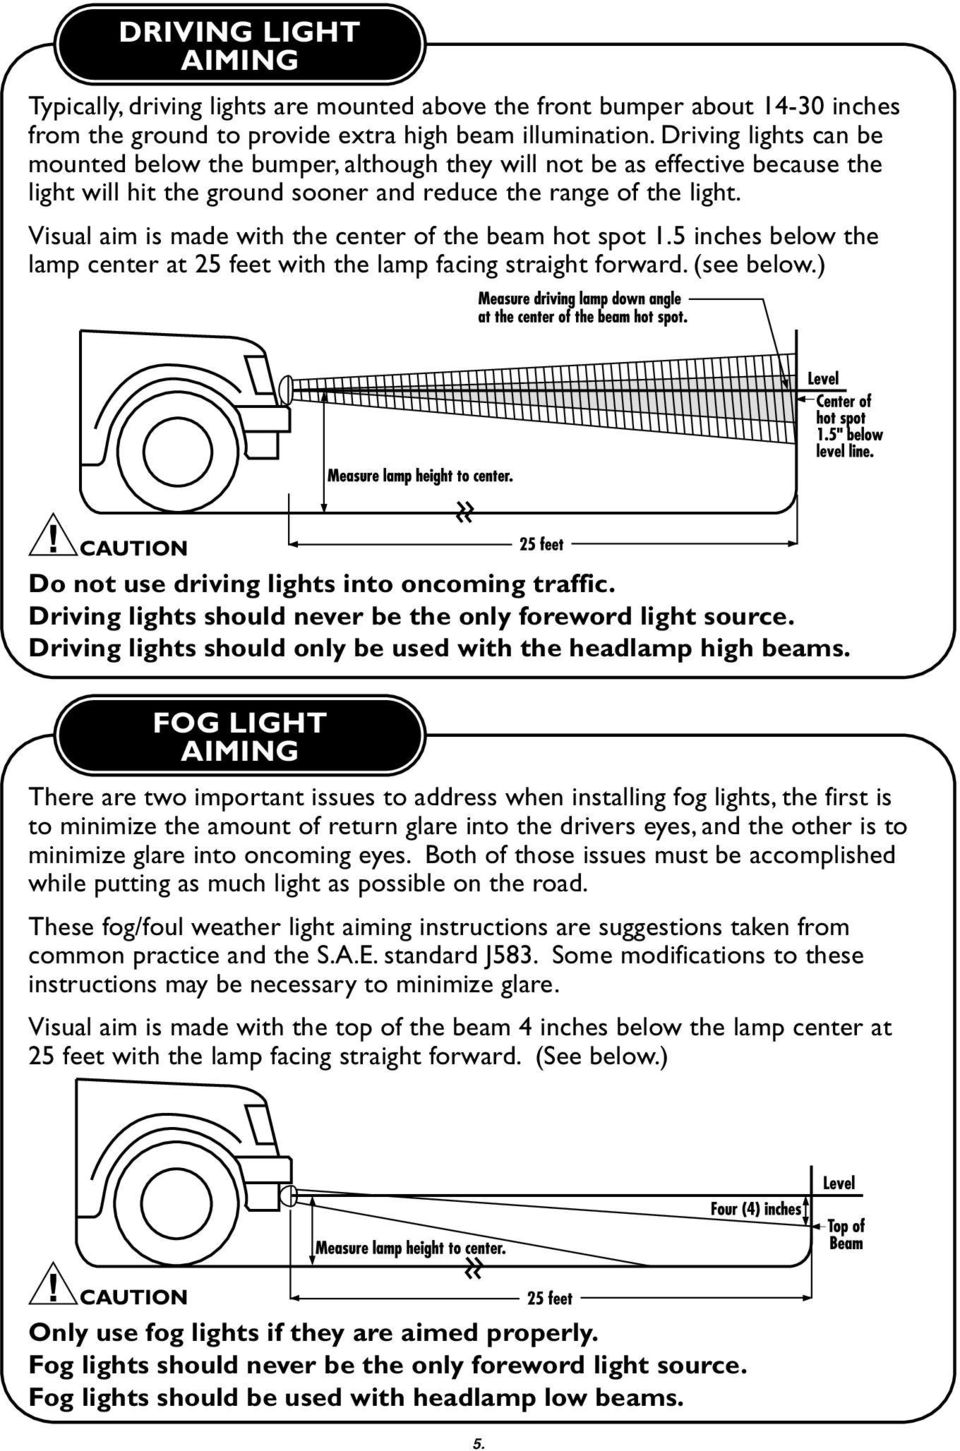 Visual aim is made with the center of the beam hot spot 1.5 inches below the lamp center at 25 feet with the lamp facing straight forward. (see below.) Do not use driving lights into oncoming traffic.